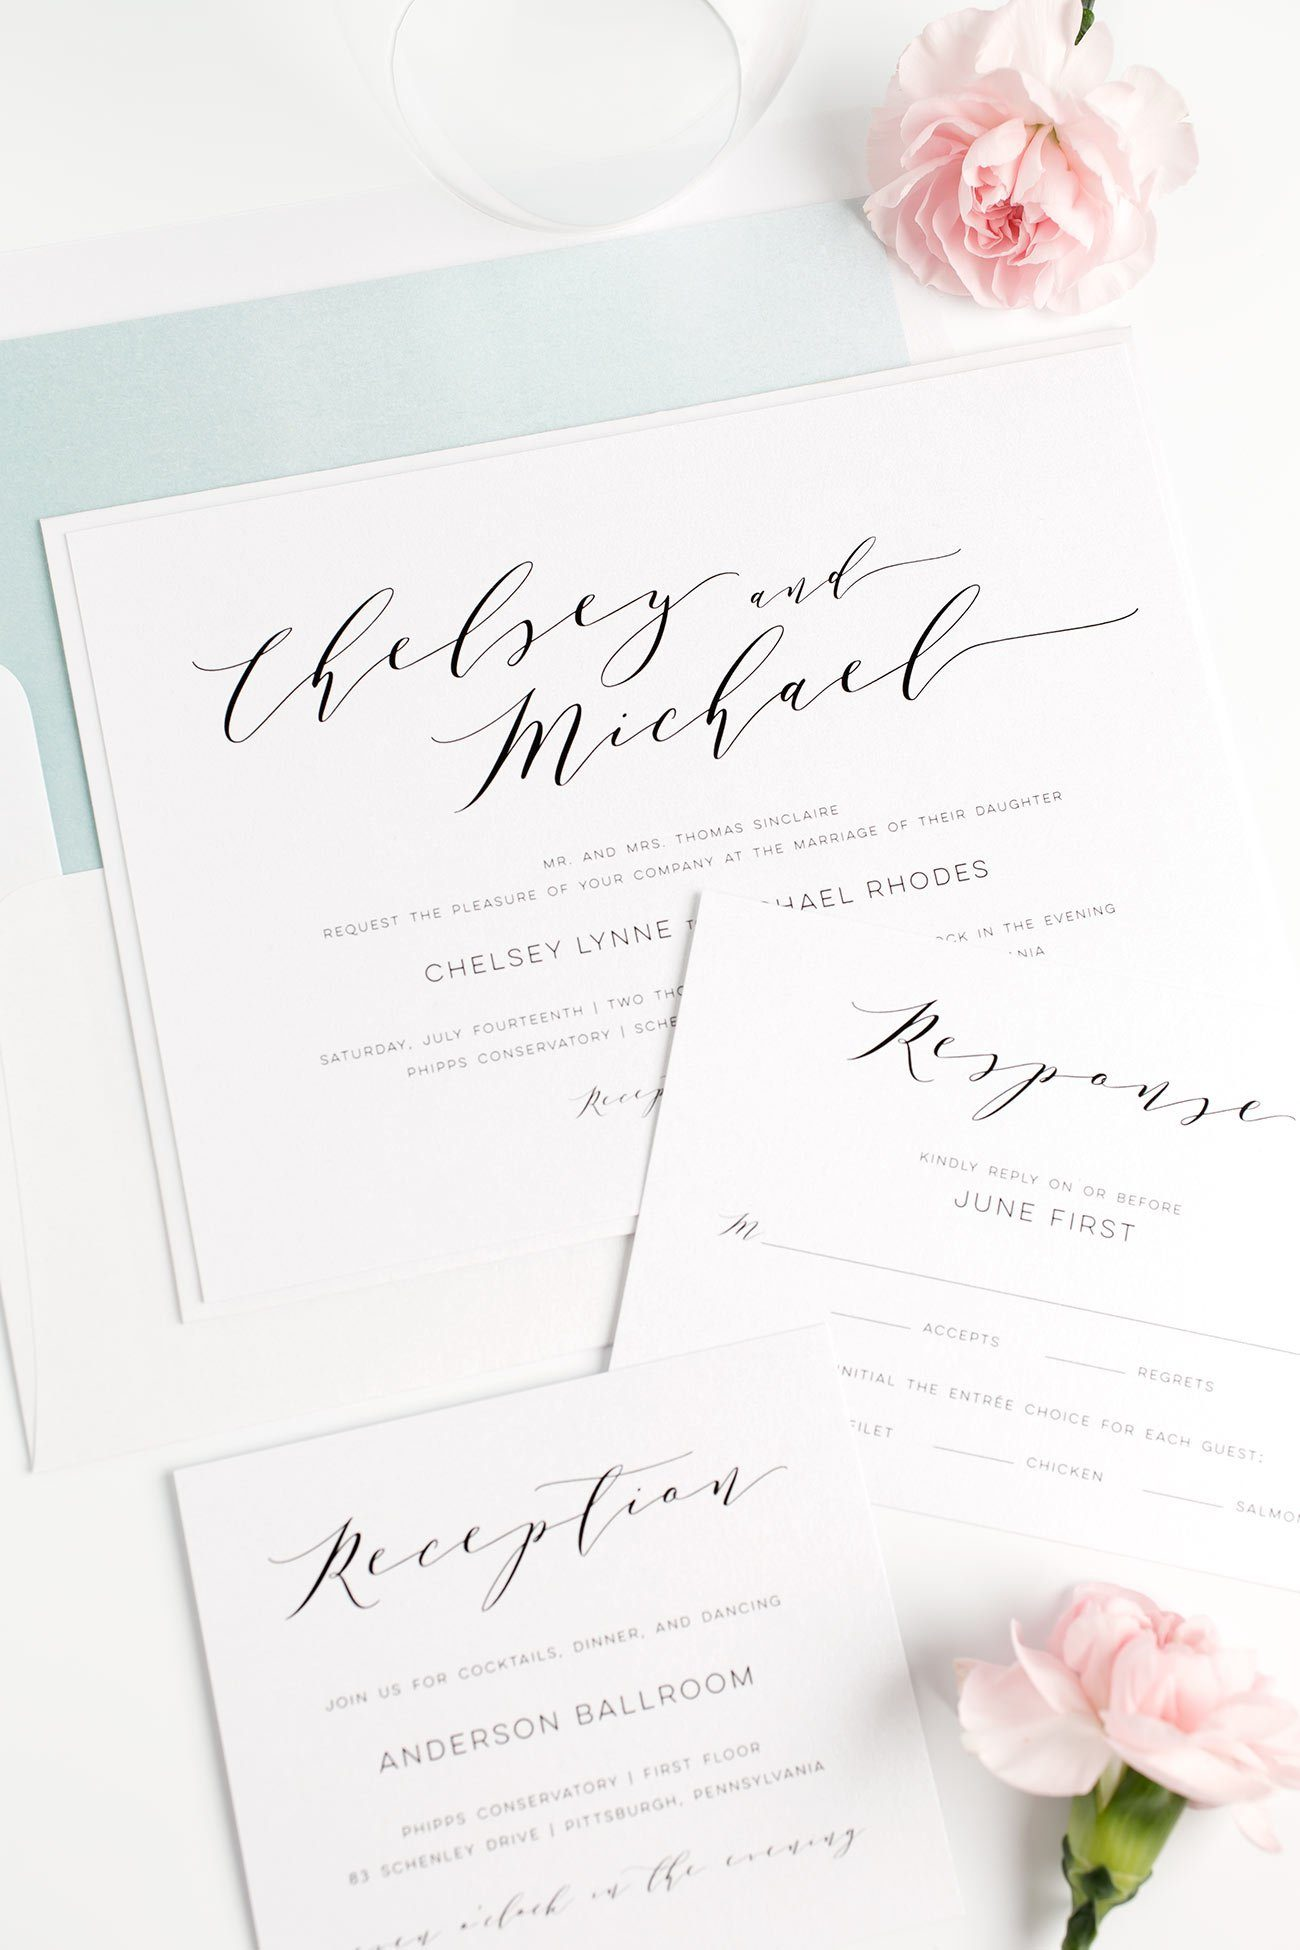 Romantic Wedding Invitations in Dusty Teal with a Watercolor Envelope Liner and Calligraphy